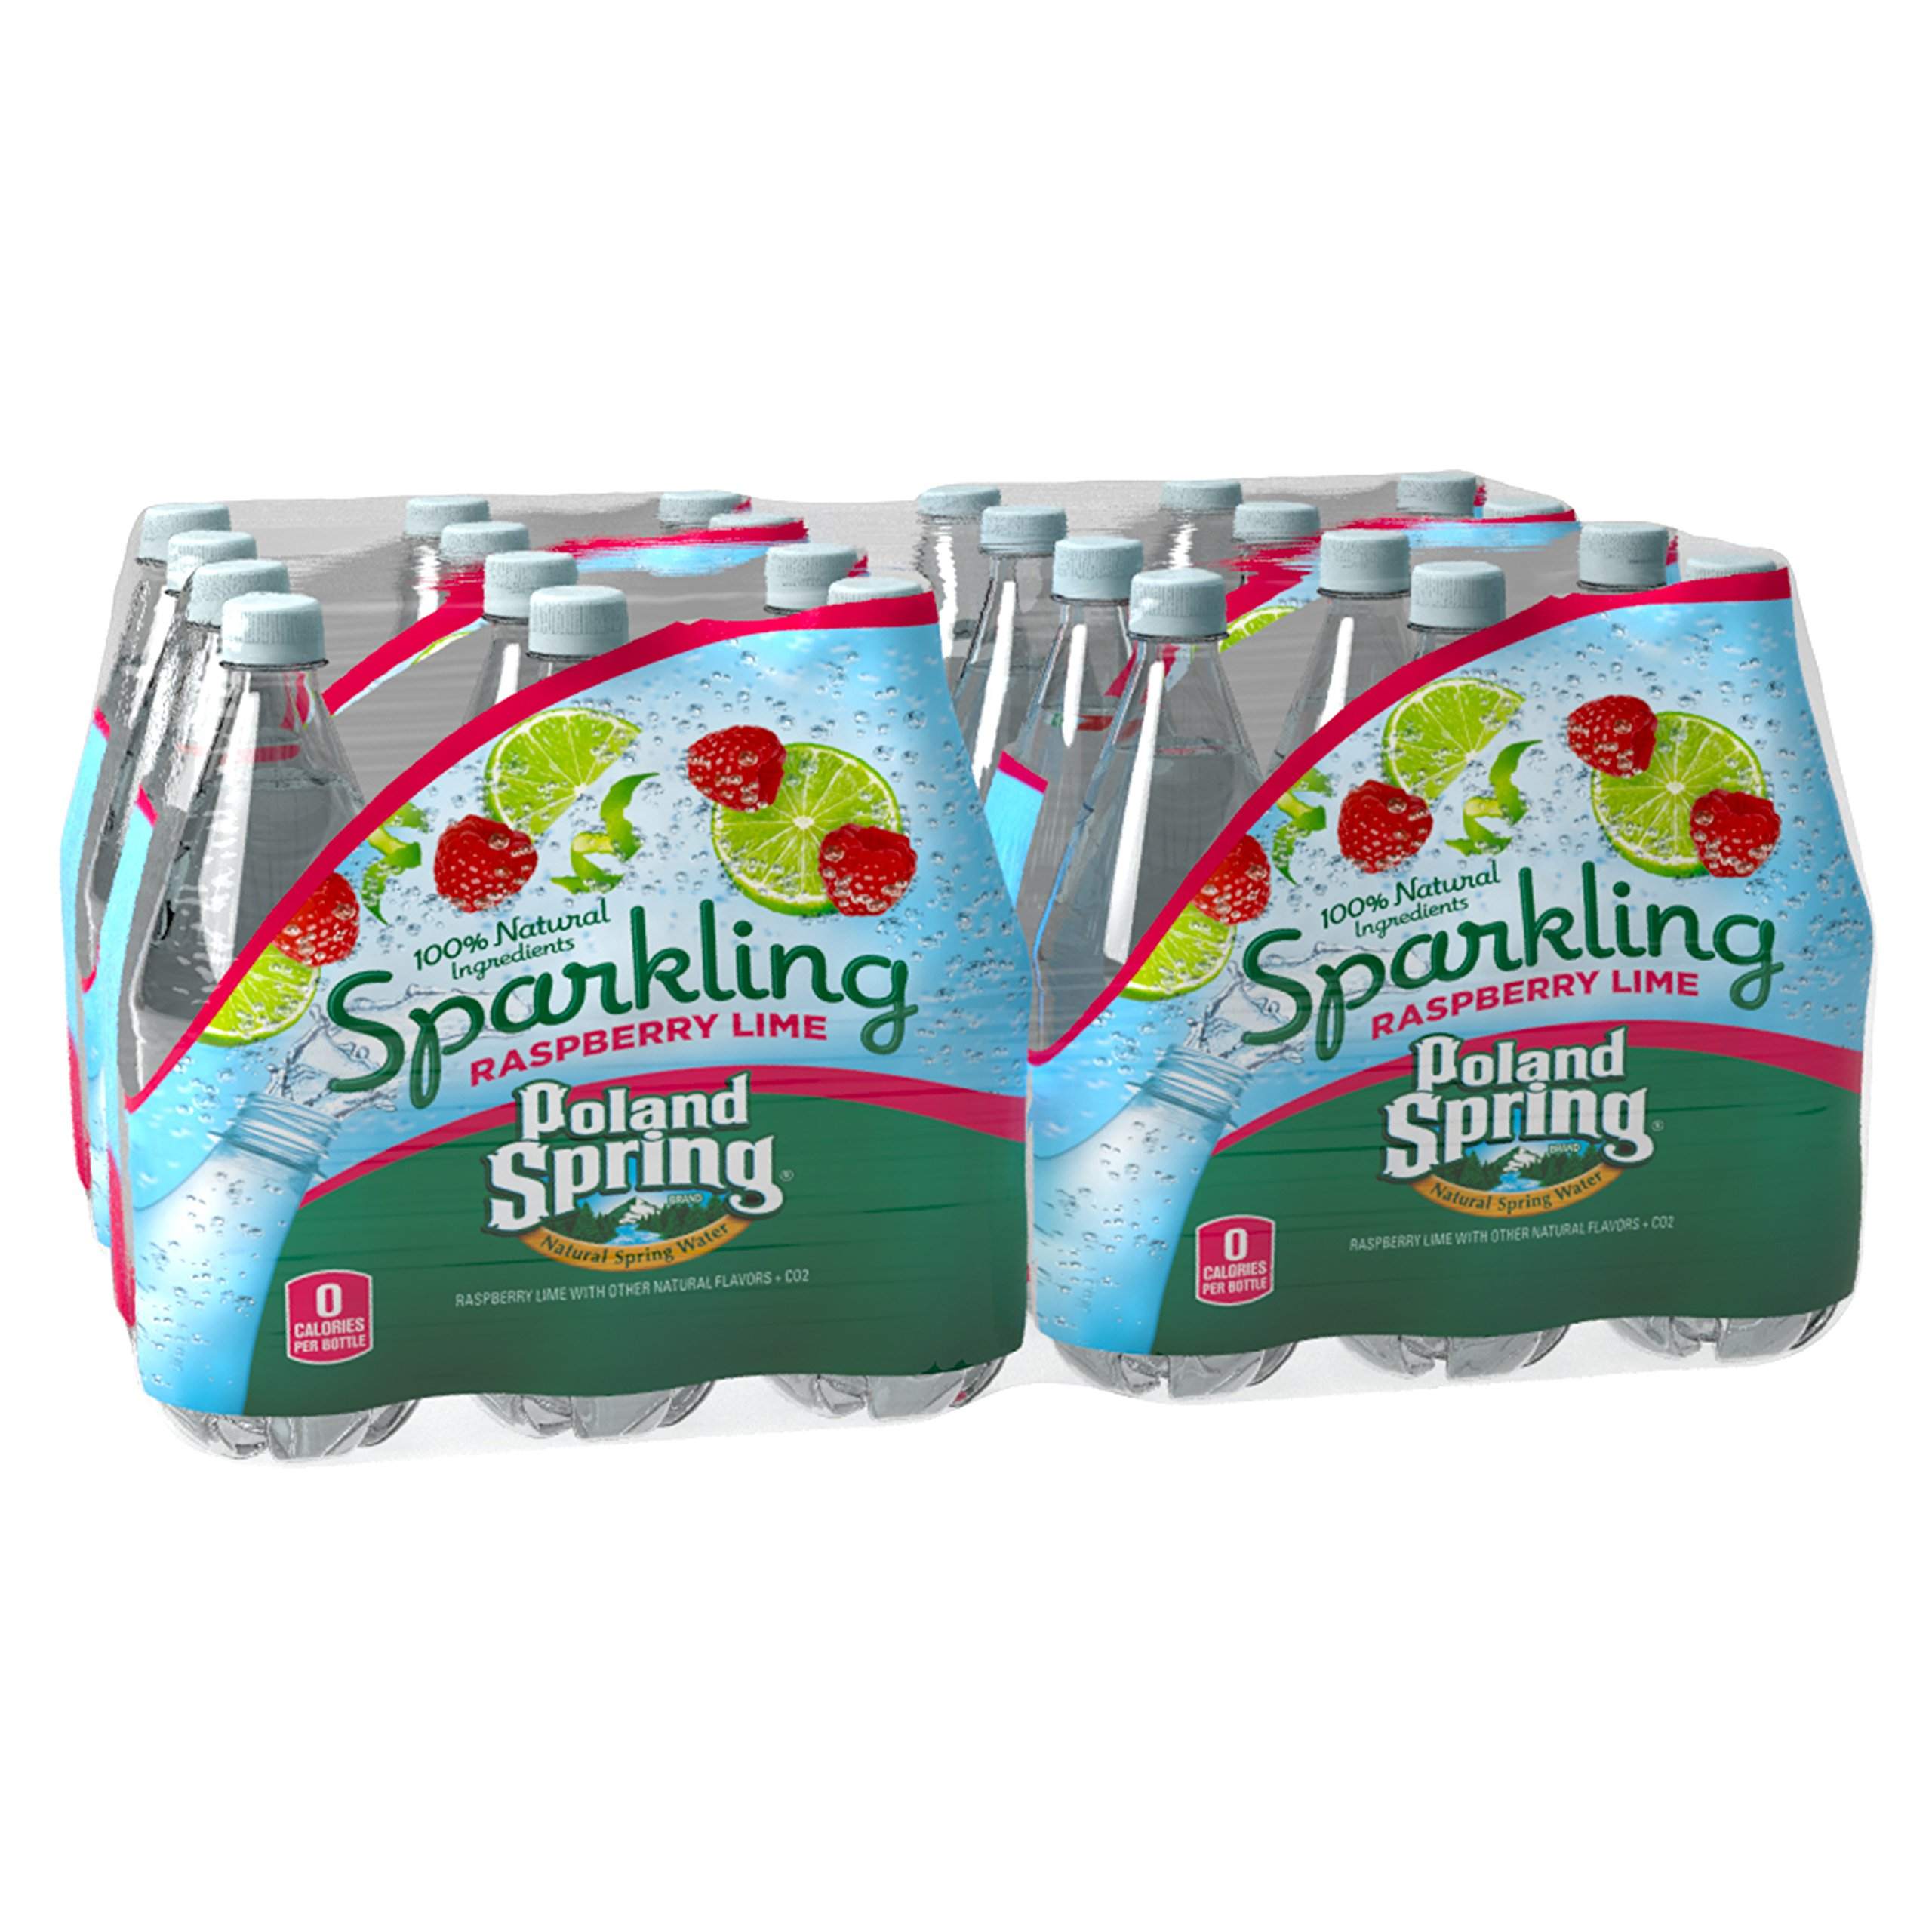 Poland Spring Sparkling Natural Spring Water, Raspberry Lime 16.9-ounce plastic bottles, 24 Count by Poland Spring